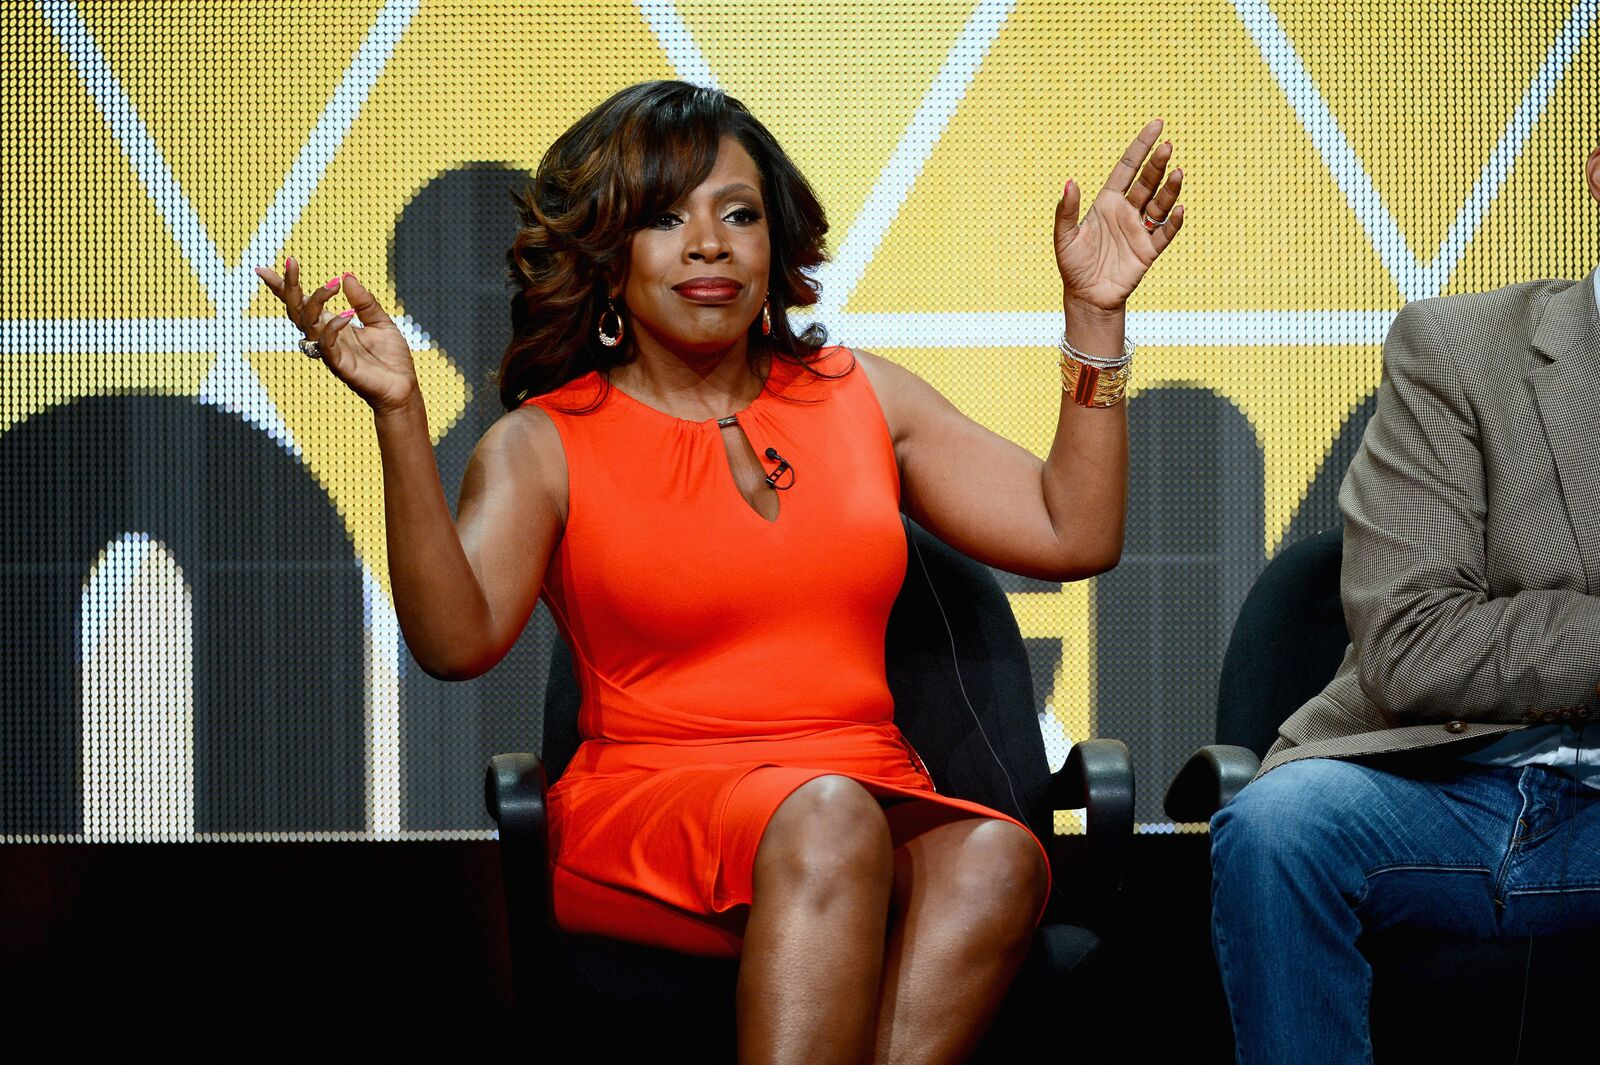 Sheryl Lee Ralph speaks onstage during the Viacom TCA Summer 2013 presentaton at The Beverly Hilton Hotel on July 26, 2013. | Photo: Getty Images